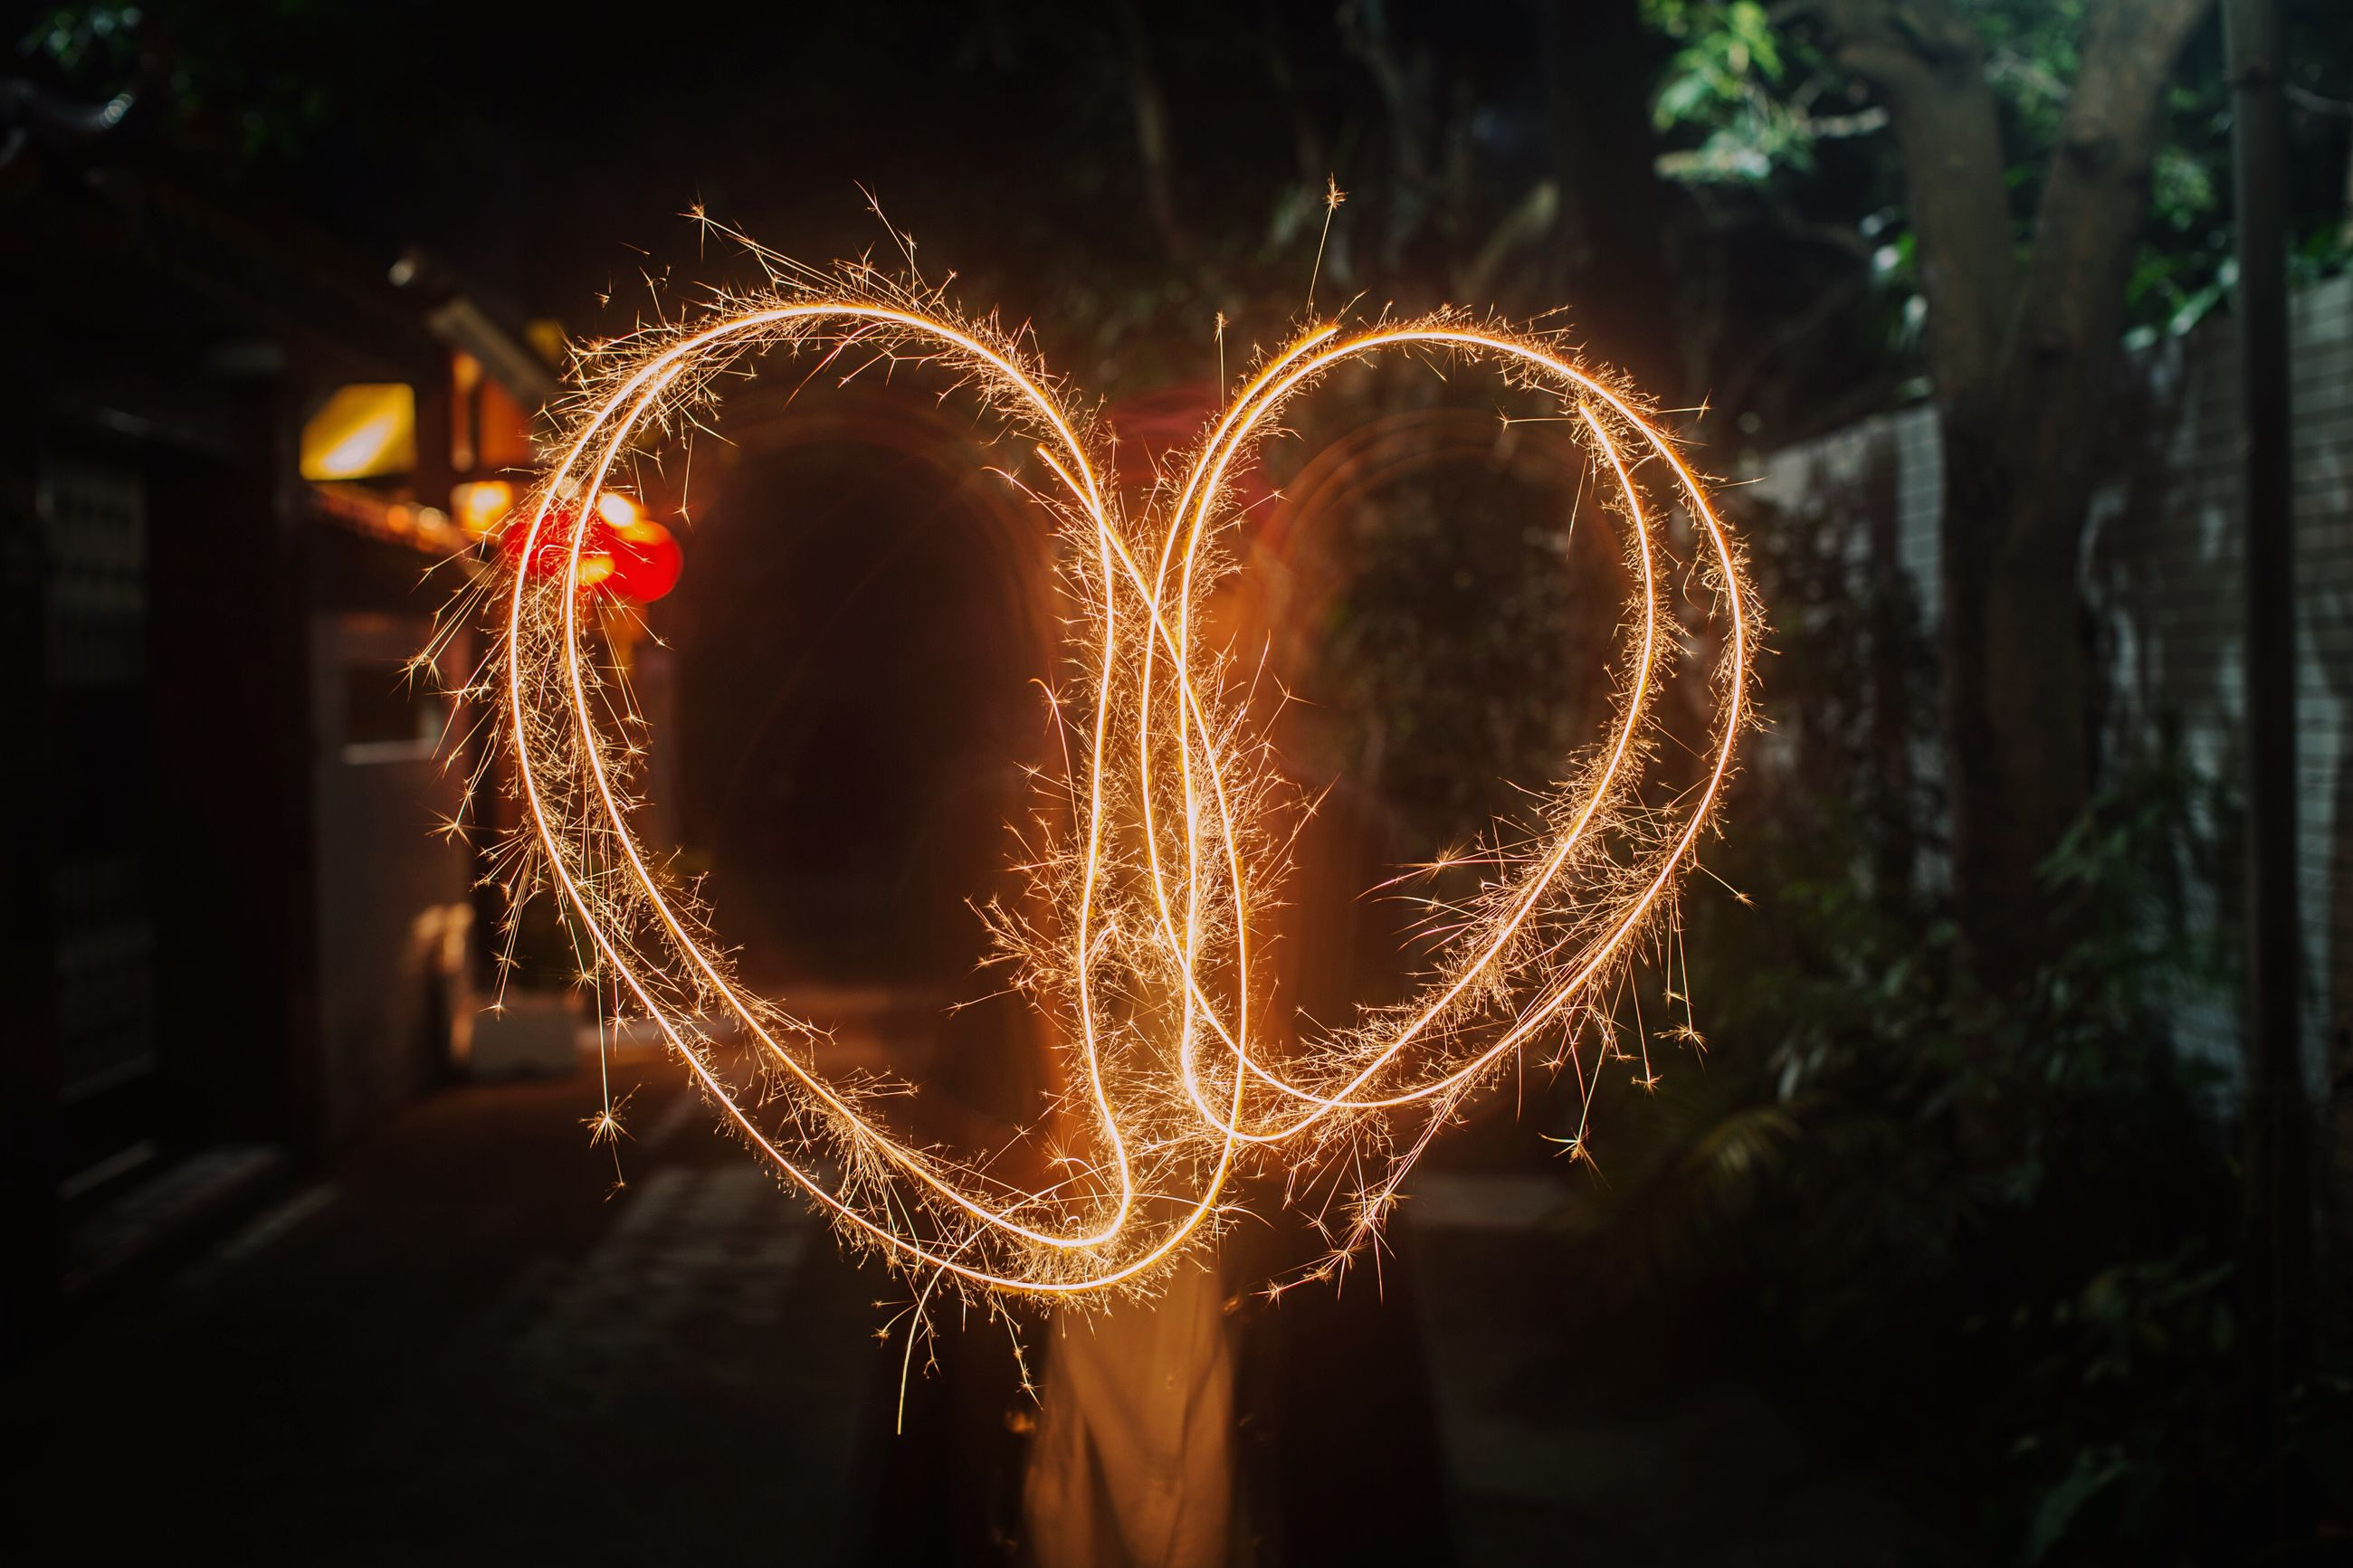 heart shape, night, love, illuminated, celebration, arts culture and entertainment, no people, close-up, holiday - event, outdoors